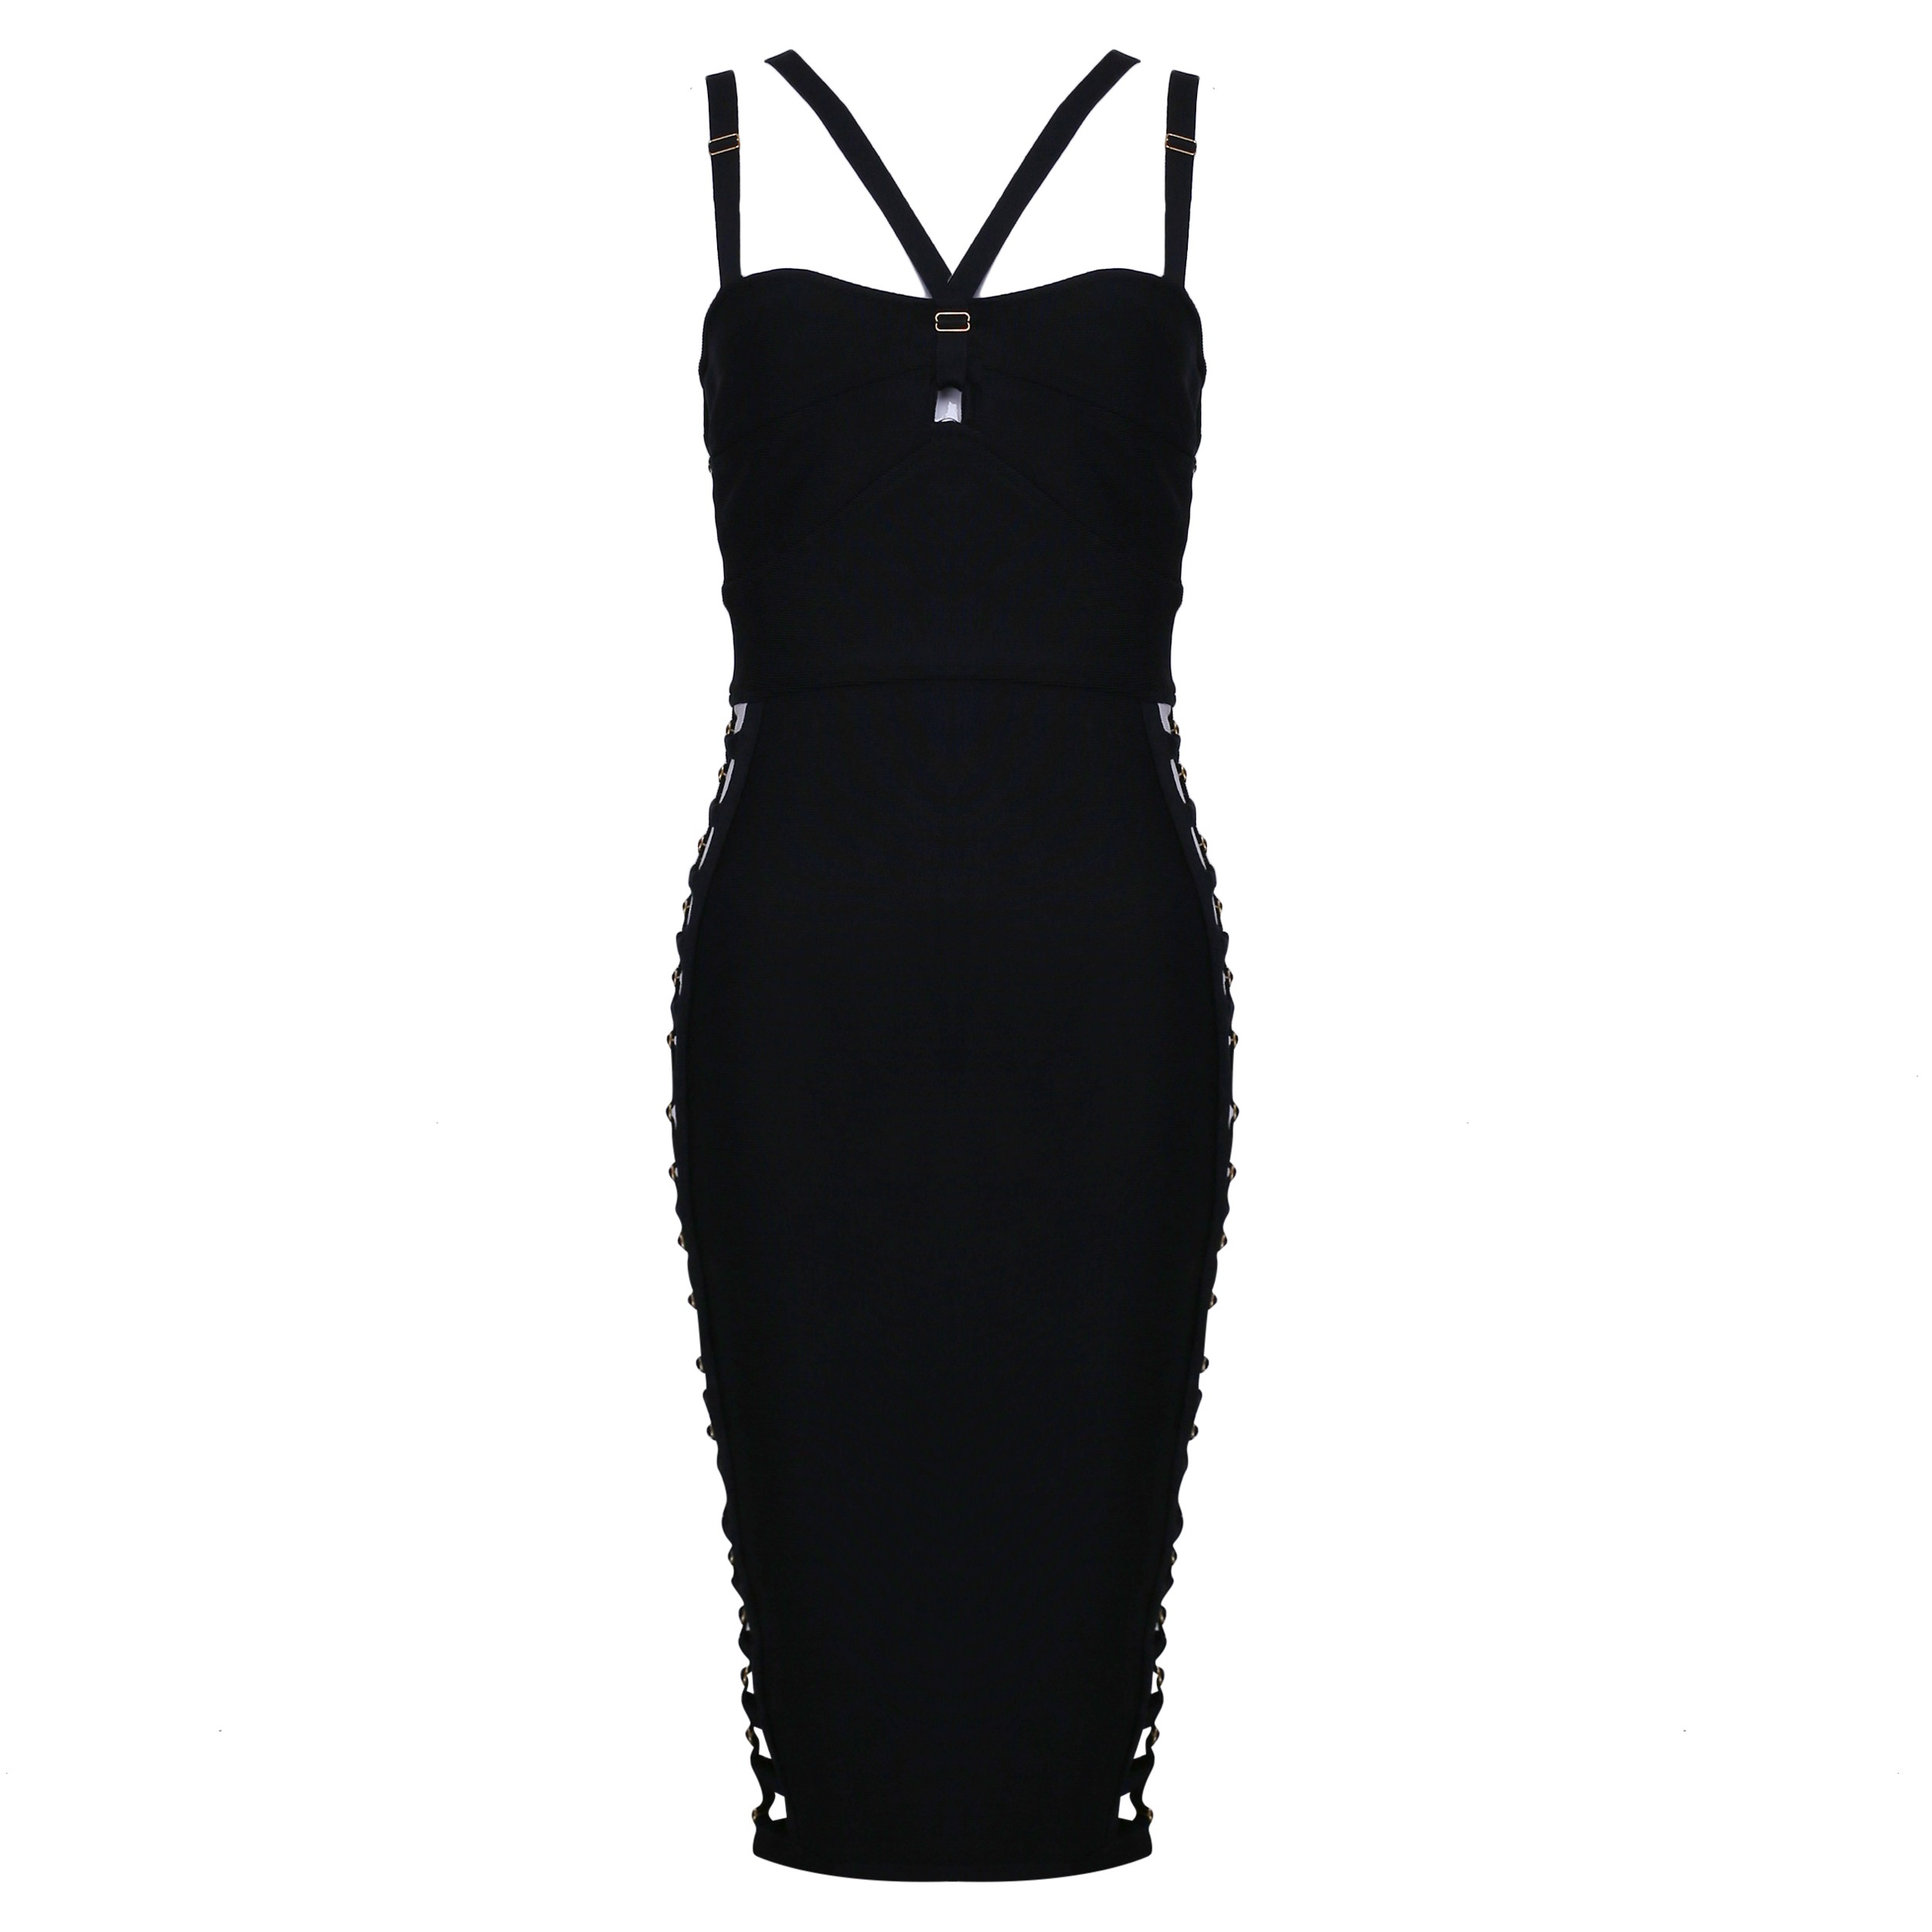 Rayon - Black Strapy Sleeveless Mini Cut Out Elegant Bandage Dress HJ471-Black